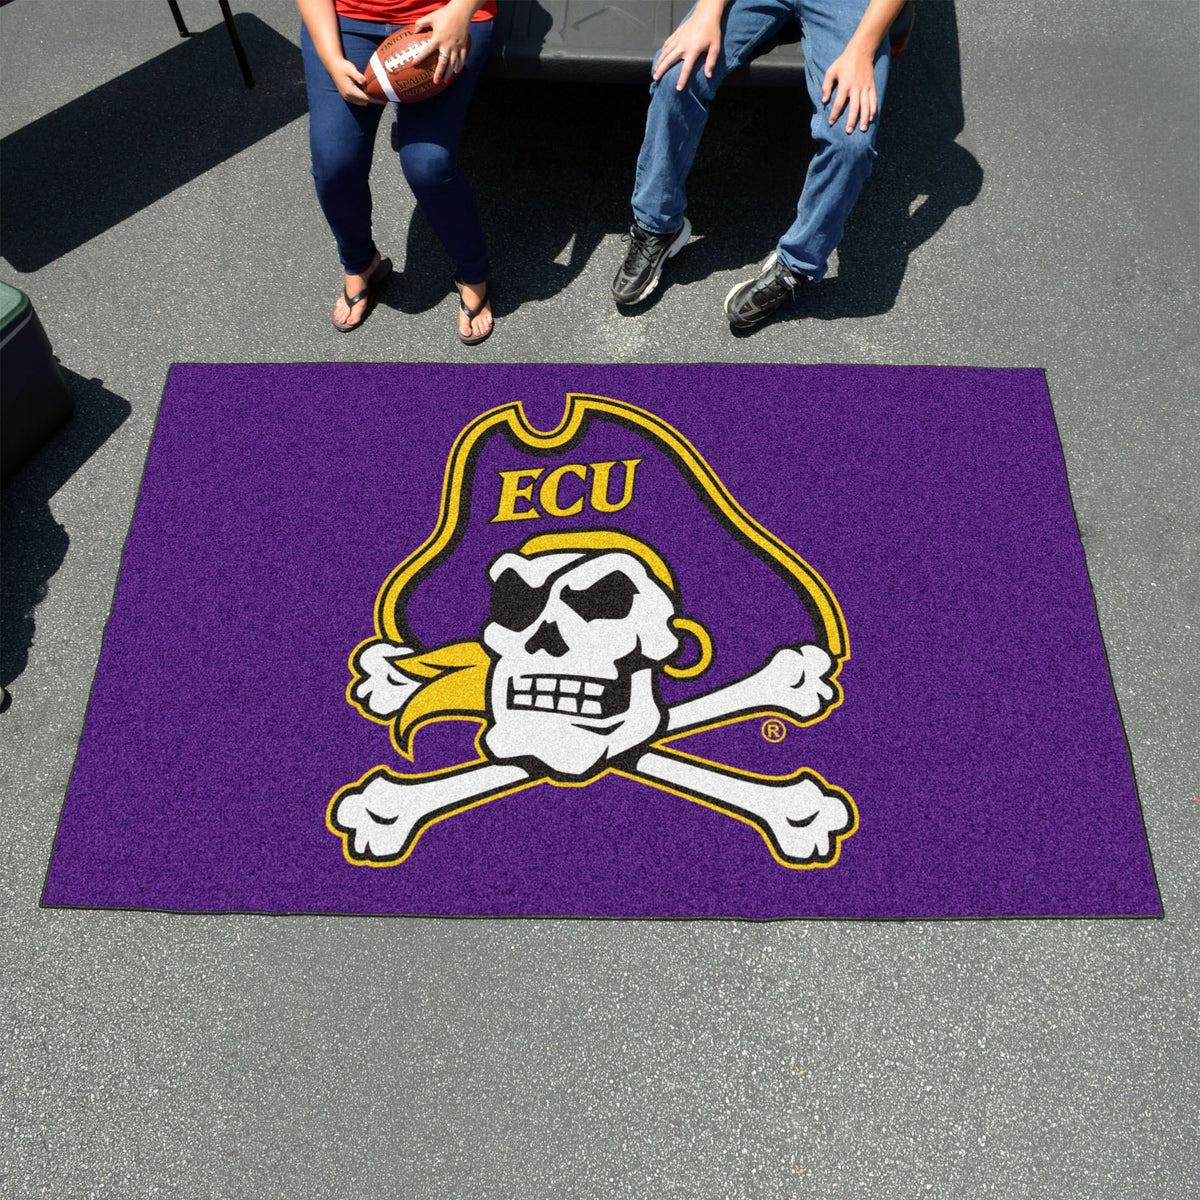 Collegiate - Ulti-Mat: A - L Collegiate Mats, Rectangular Mats, Ulti-Mat, Collegiate, Home Fan Mats East Carolina